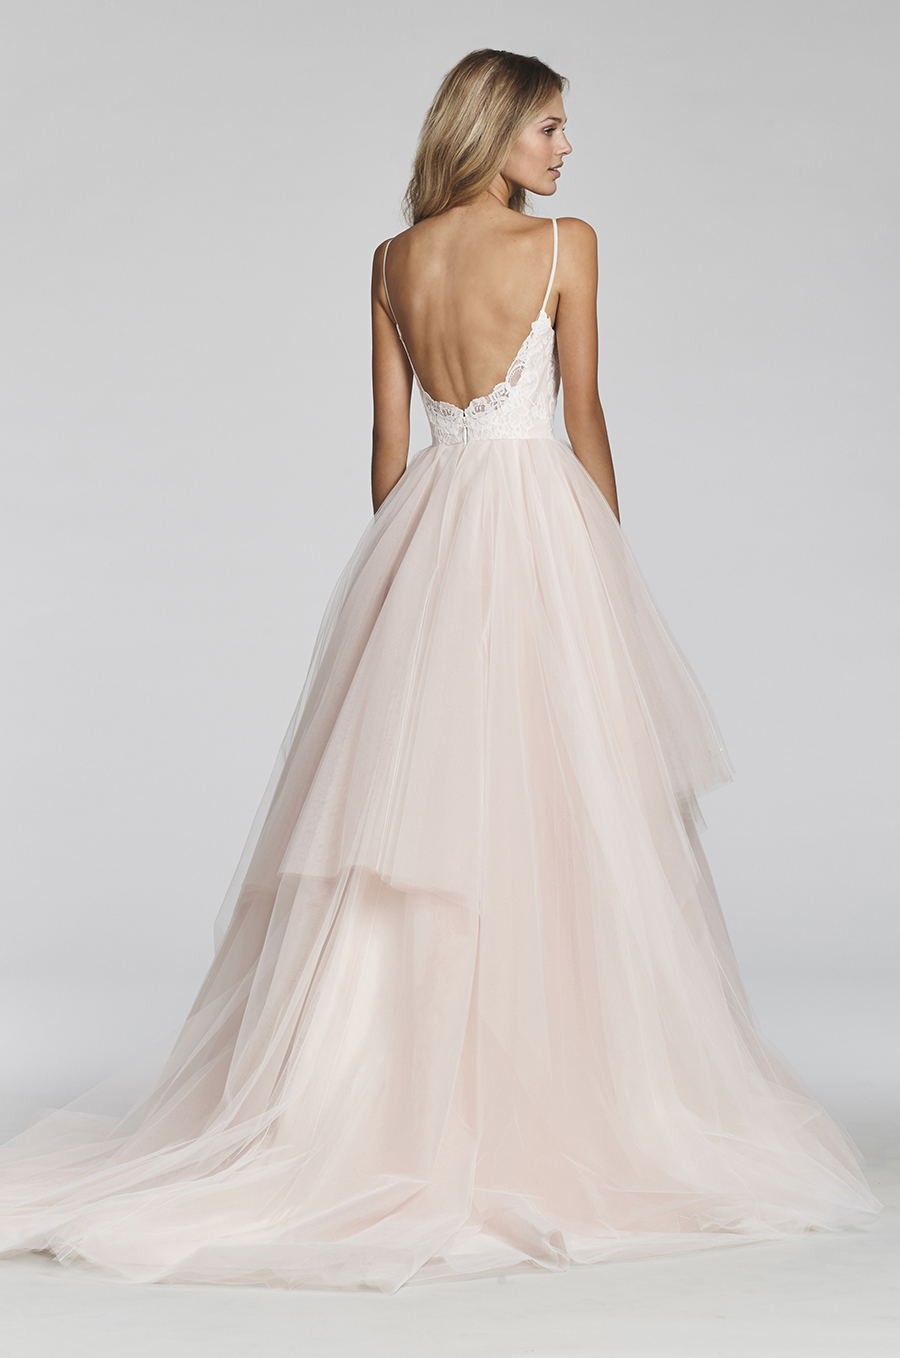 Blush by Hayley Paige Spring 2017 Bridal Gown Collection style 1708 Back